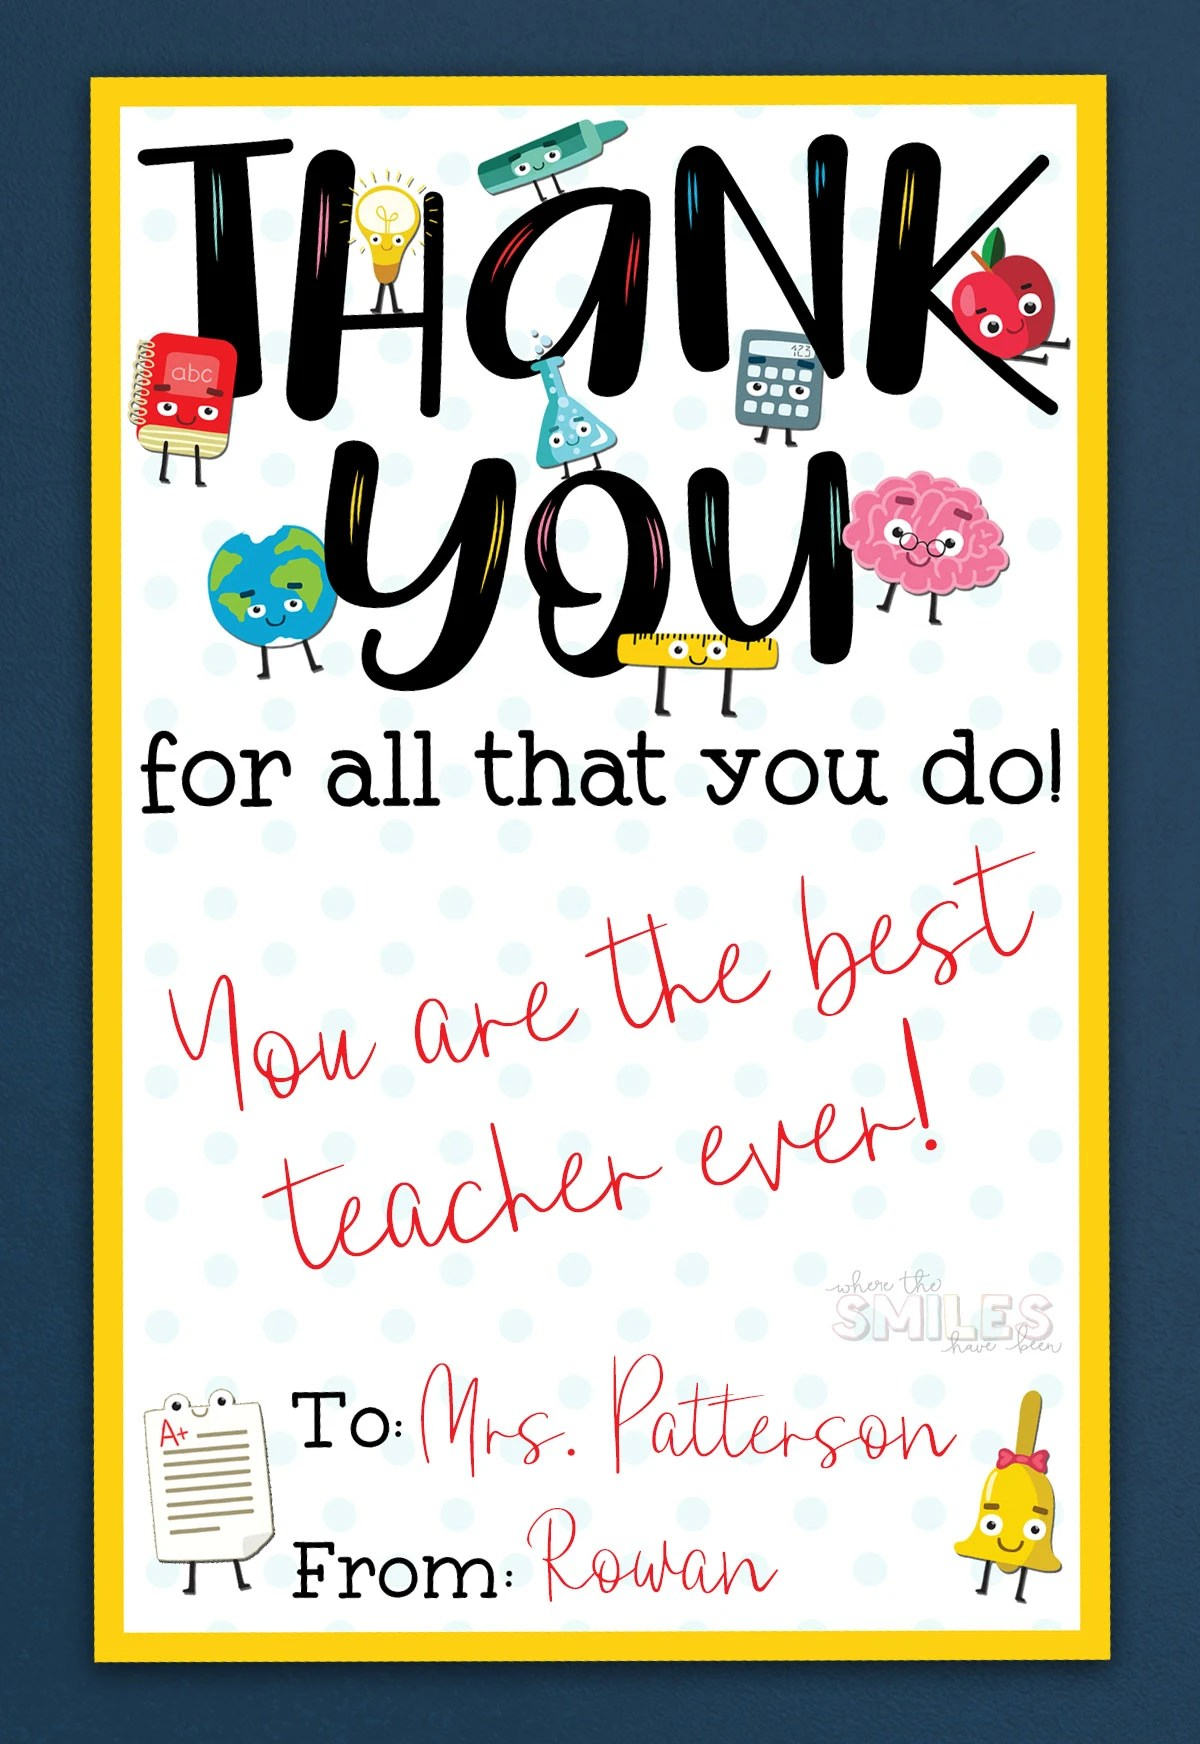 It is a graphic of Free Printable Cards for Teachers intended for grade 1